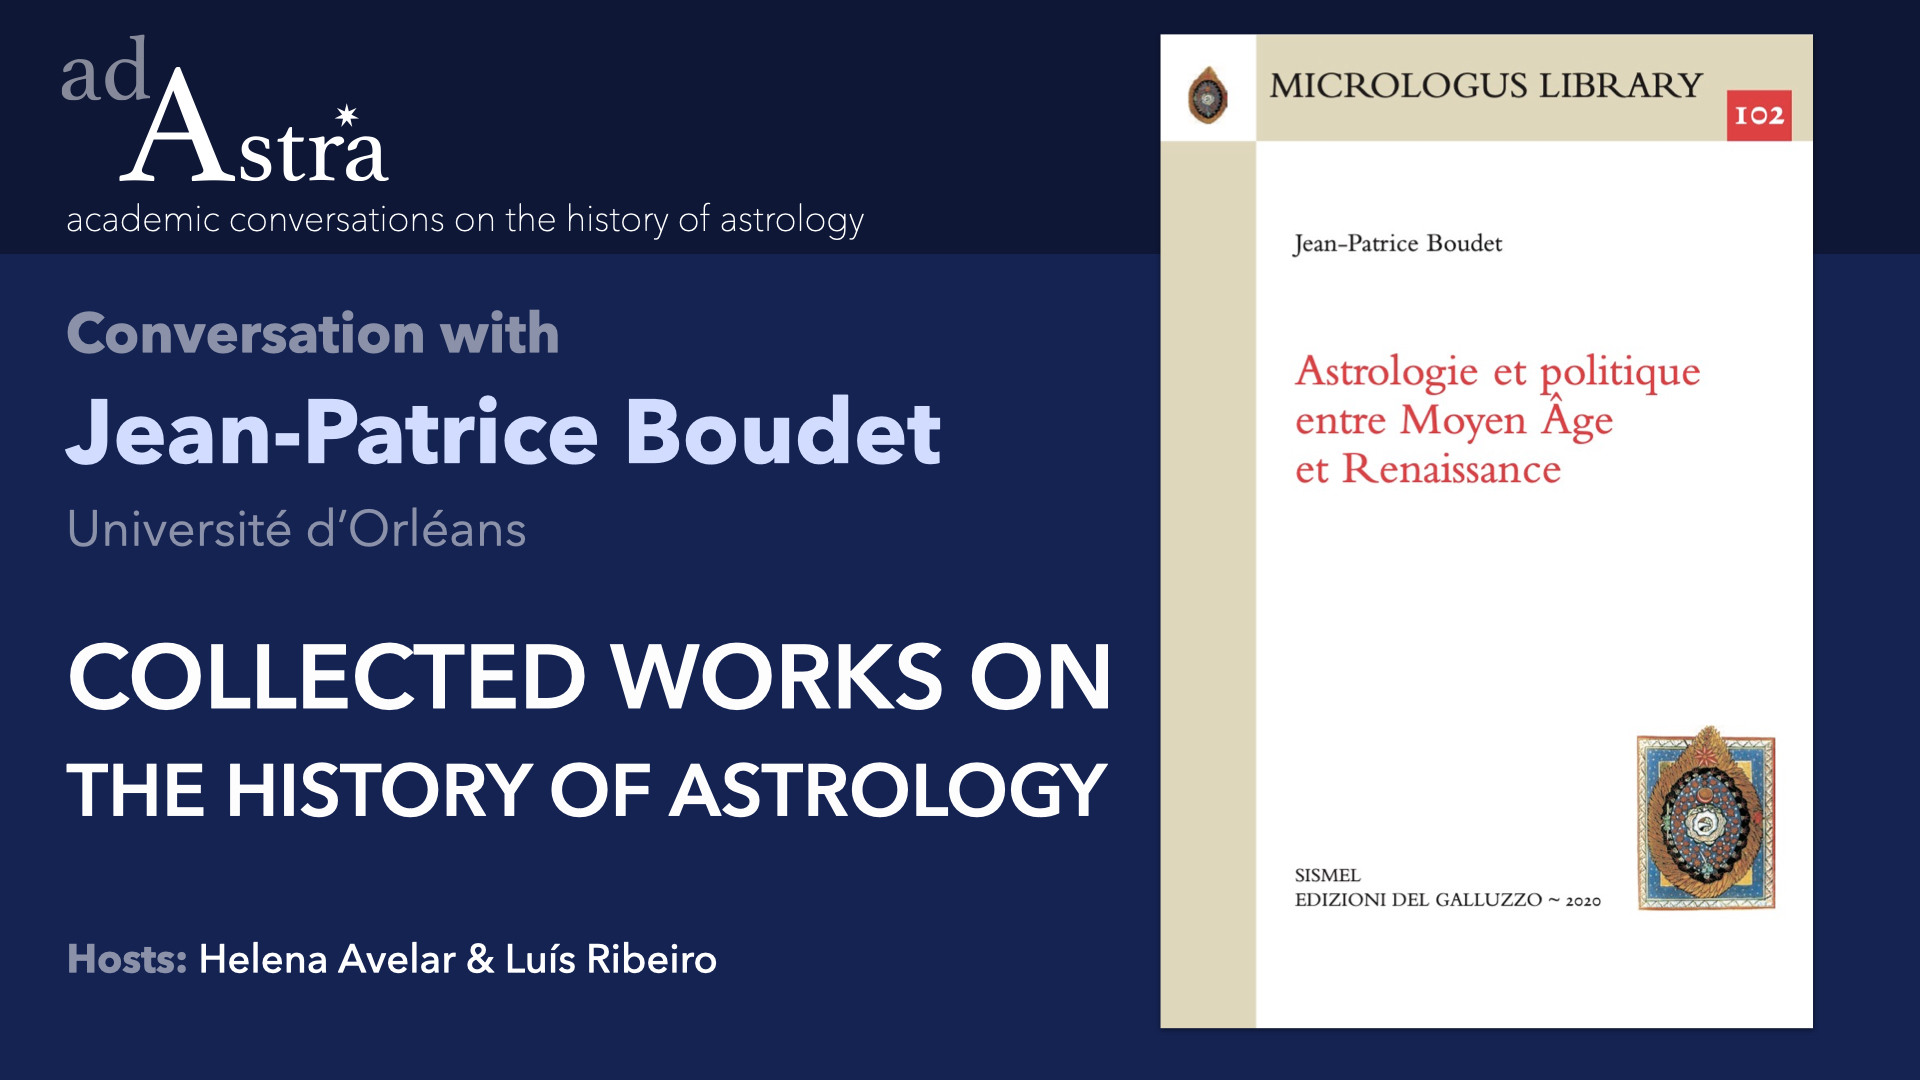 Collected Works On The History Of Astrology With Jean-Patrice Boudet